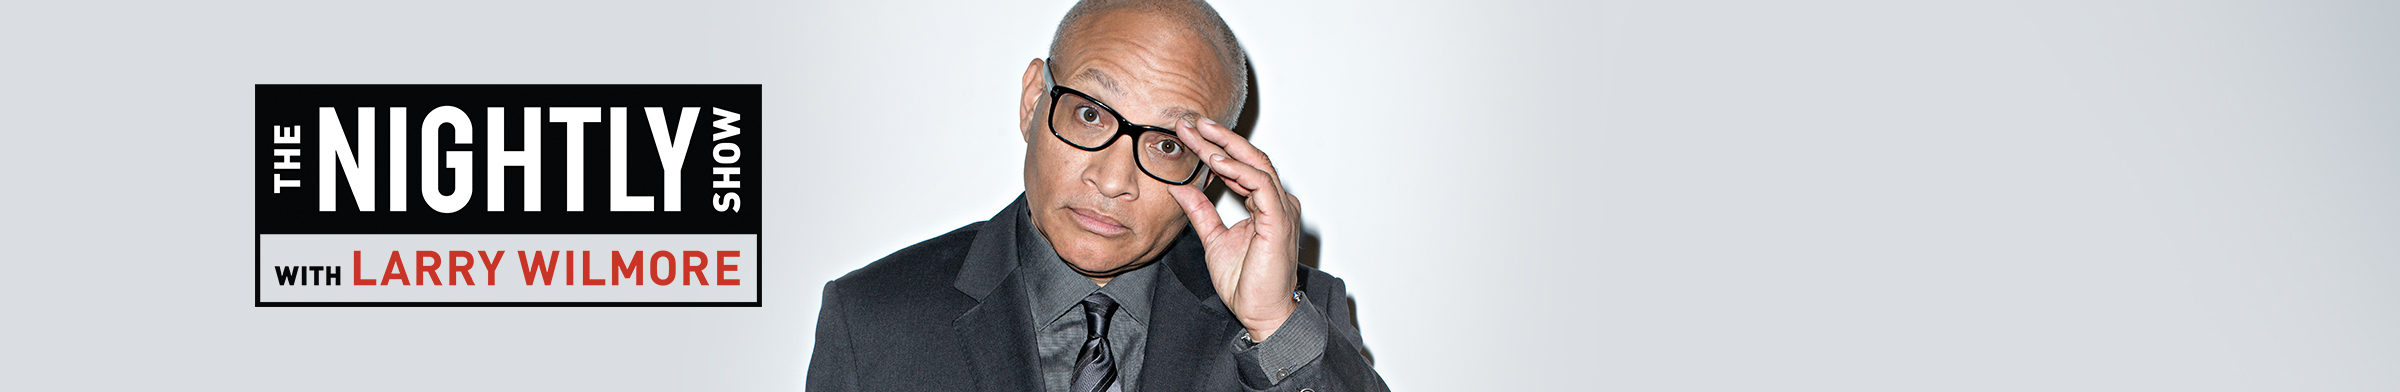 Tickets for The Nightly Show with Larry Wilmore in New York from ShowClix